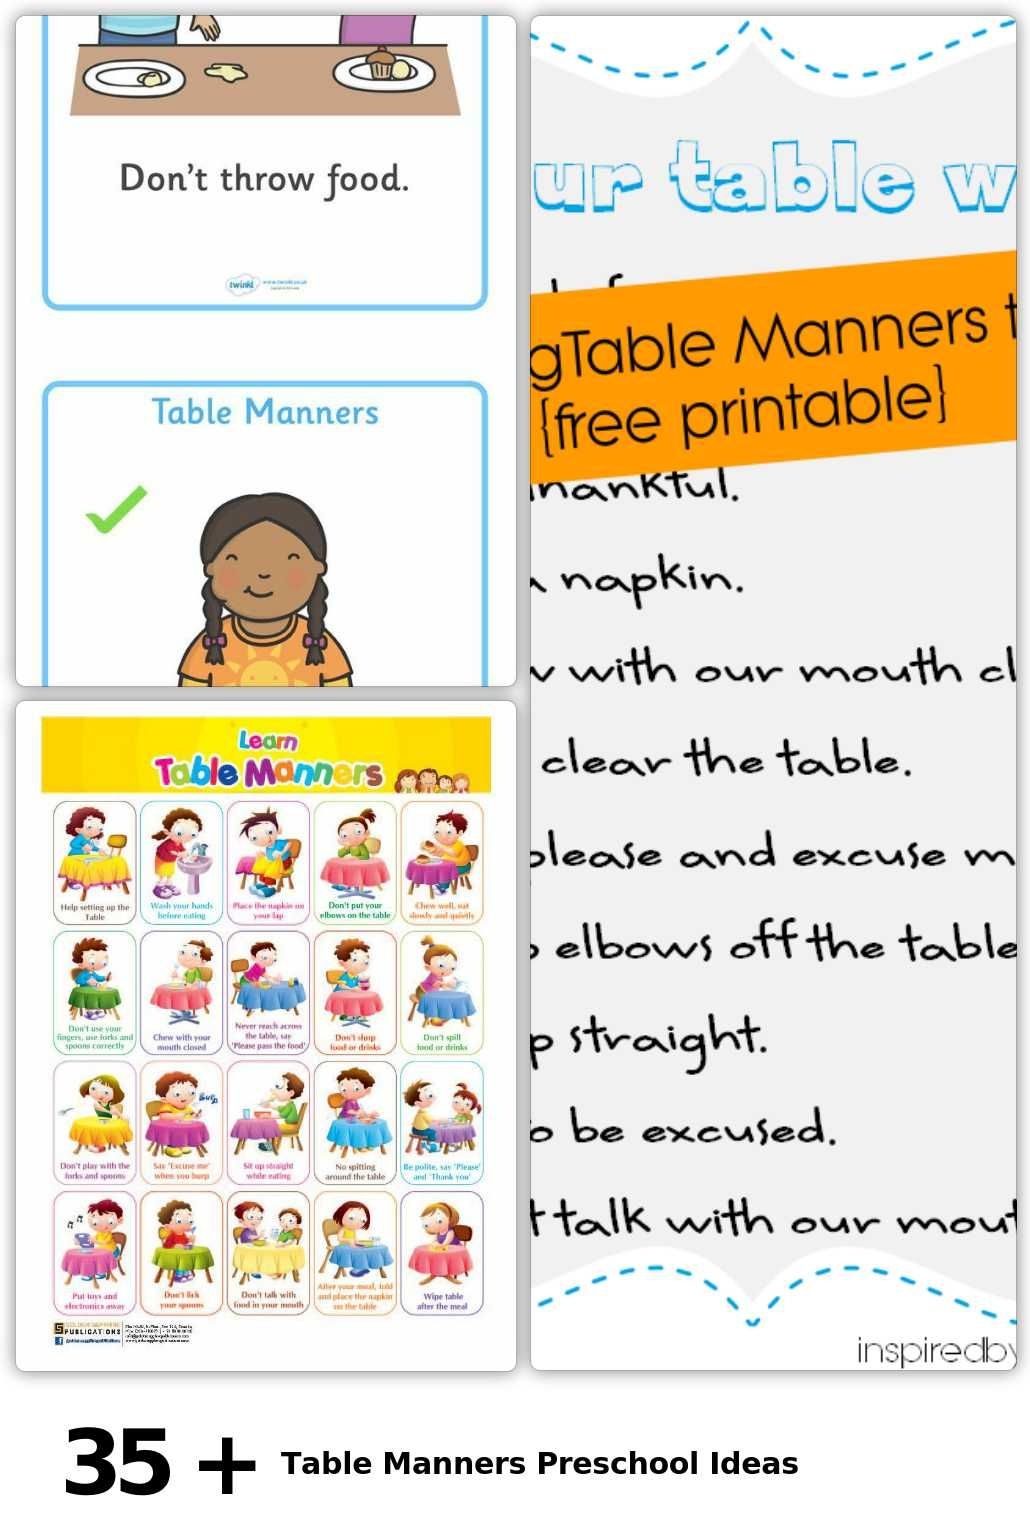 35 Table Manners Preschool Ideas In